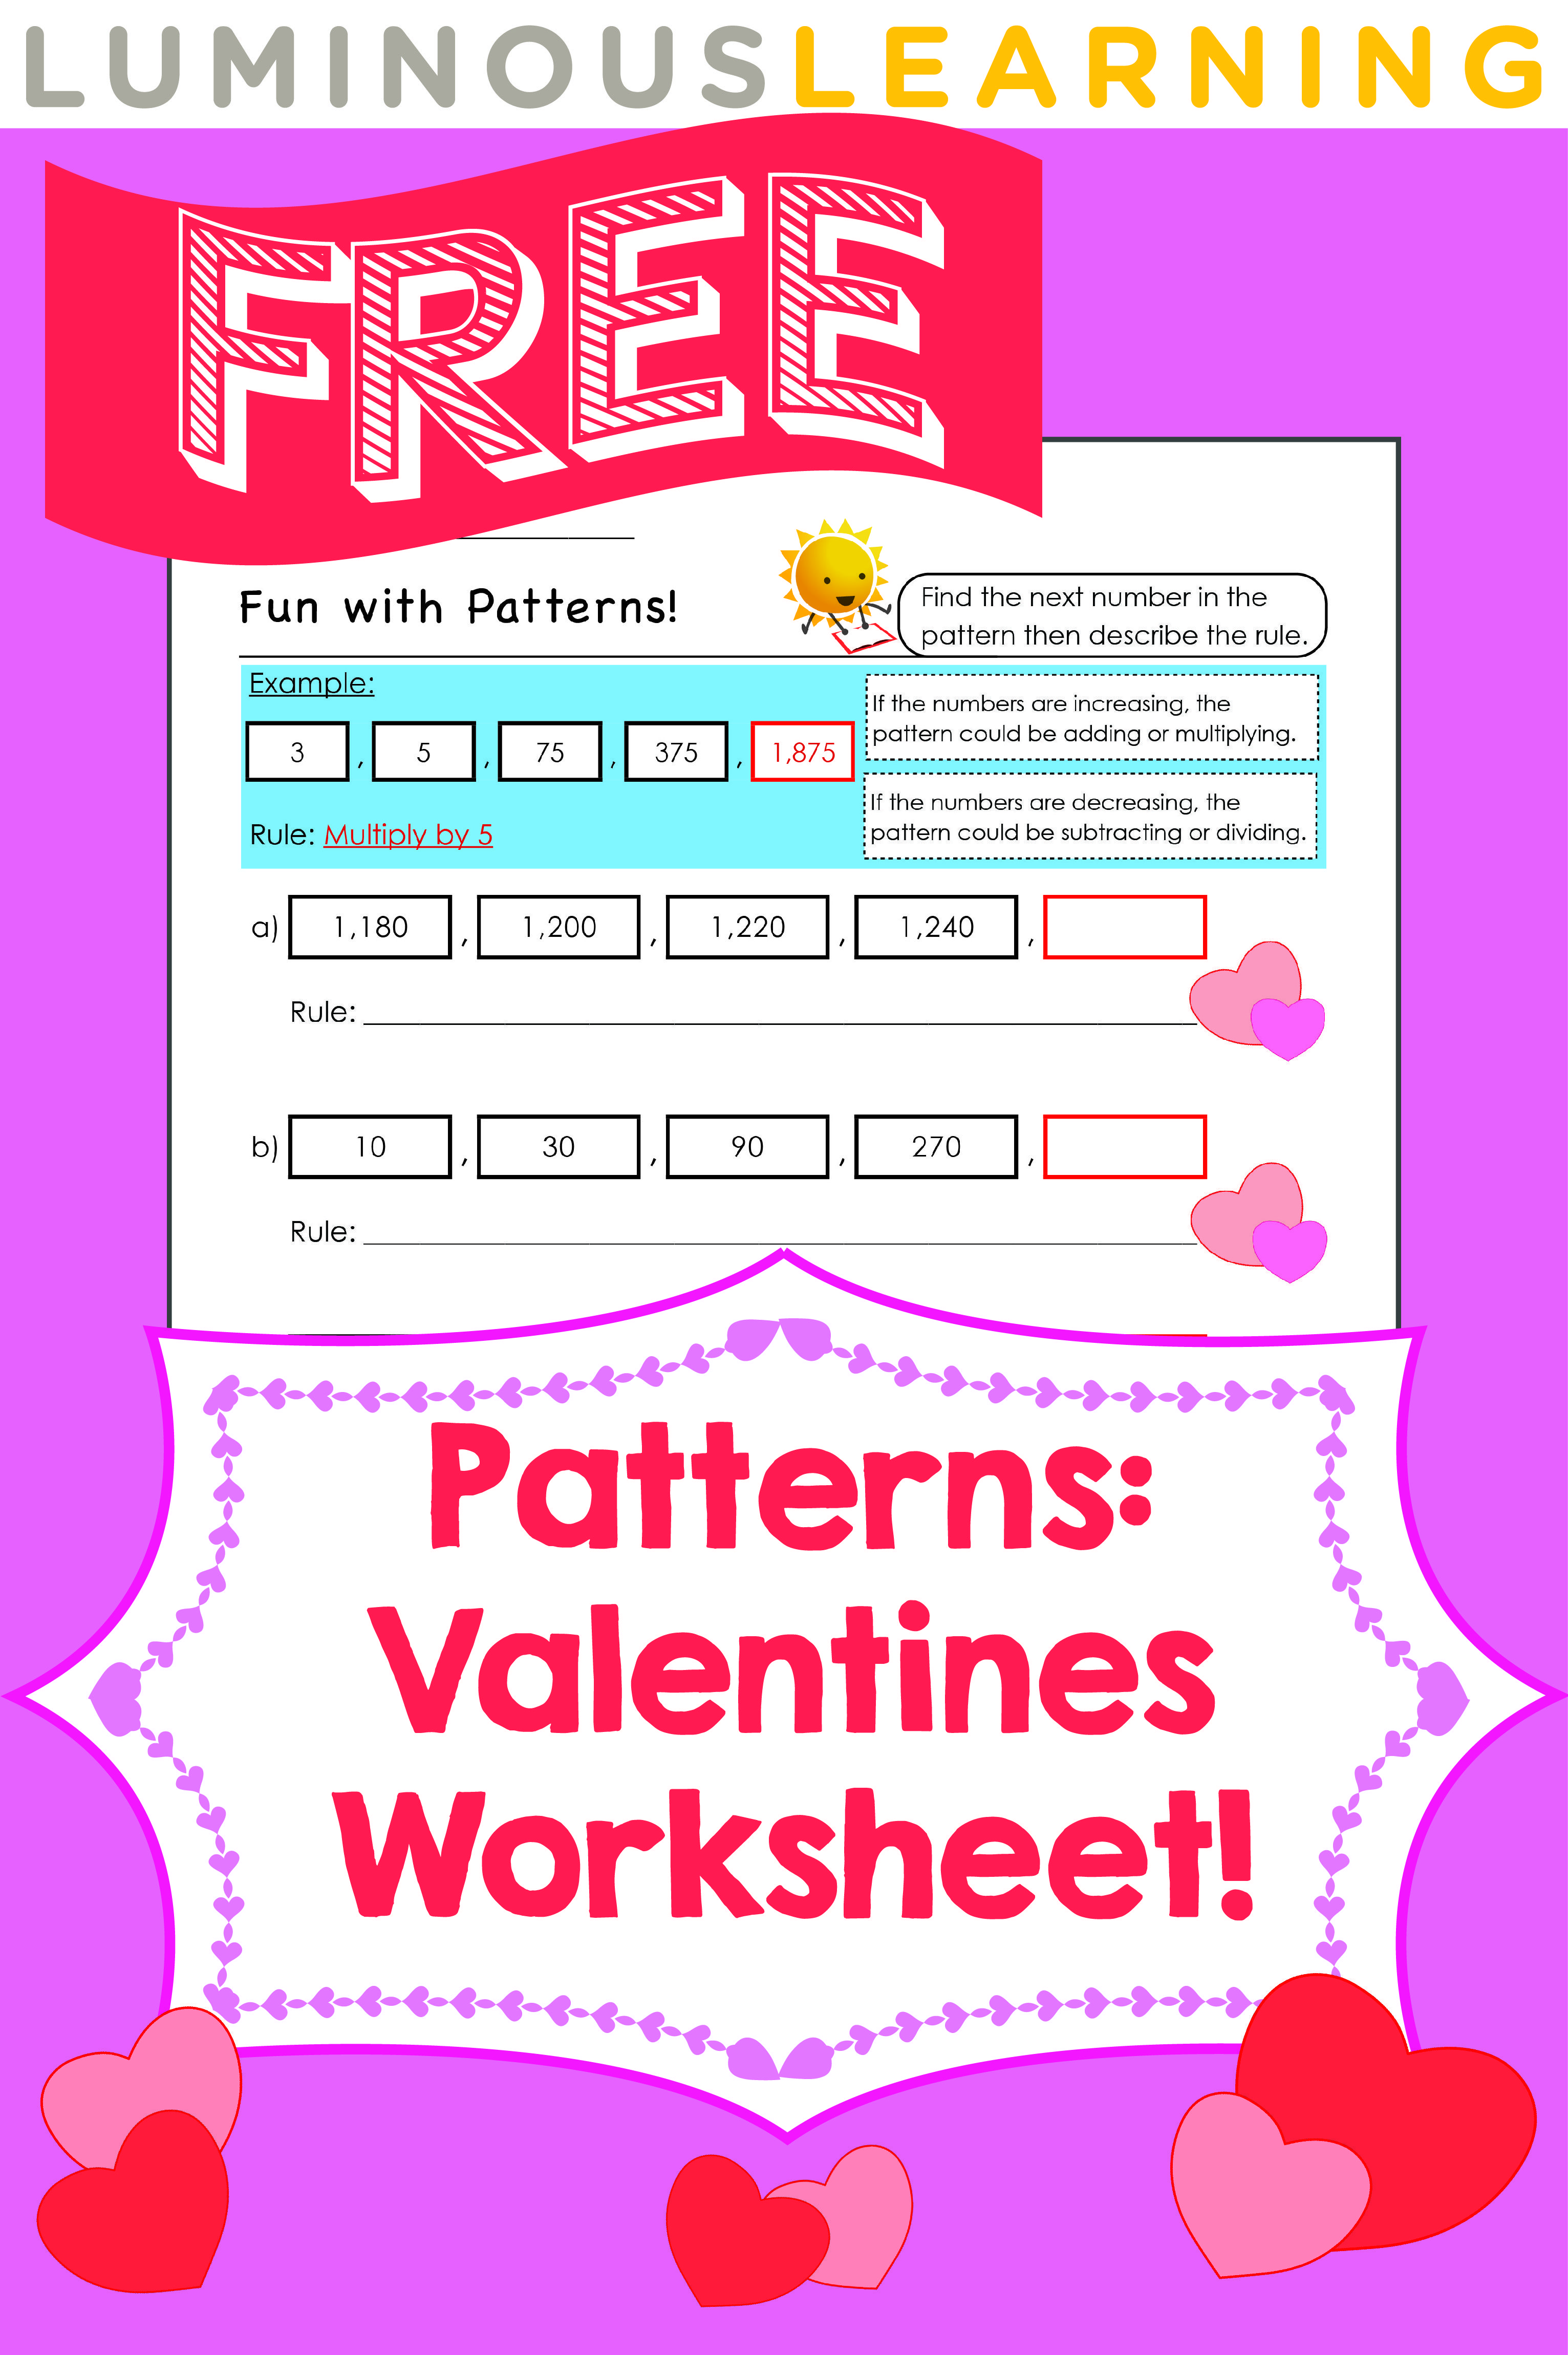 Luminous Learning Free Valentines Worksheet Number